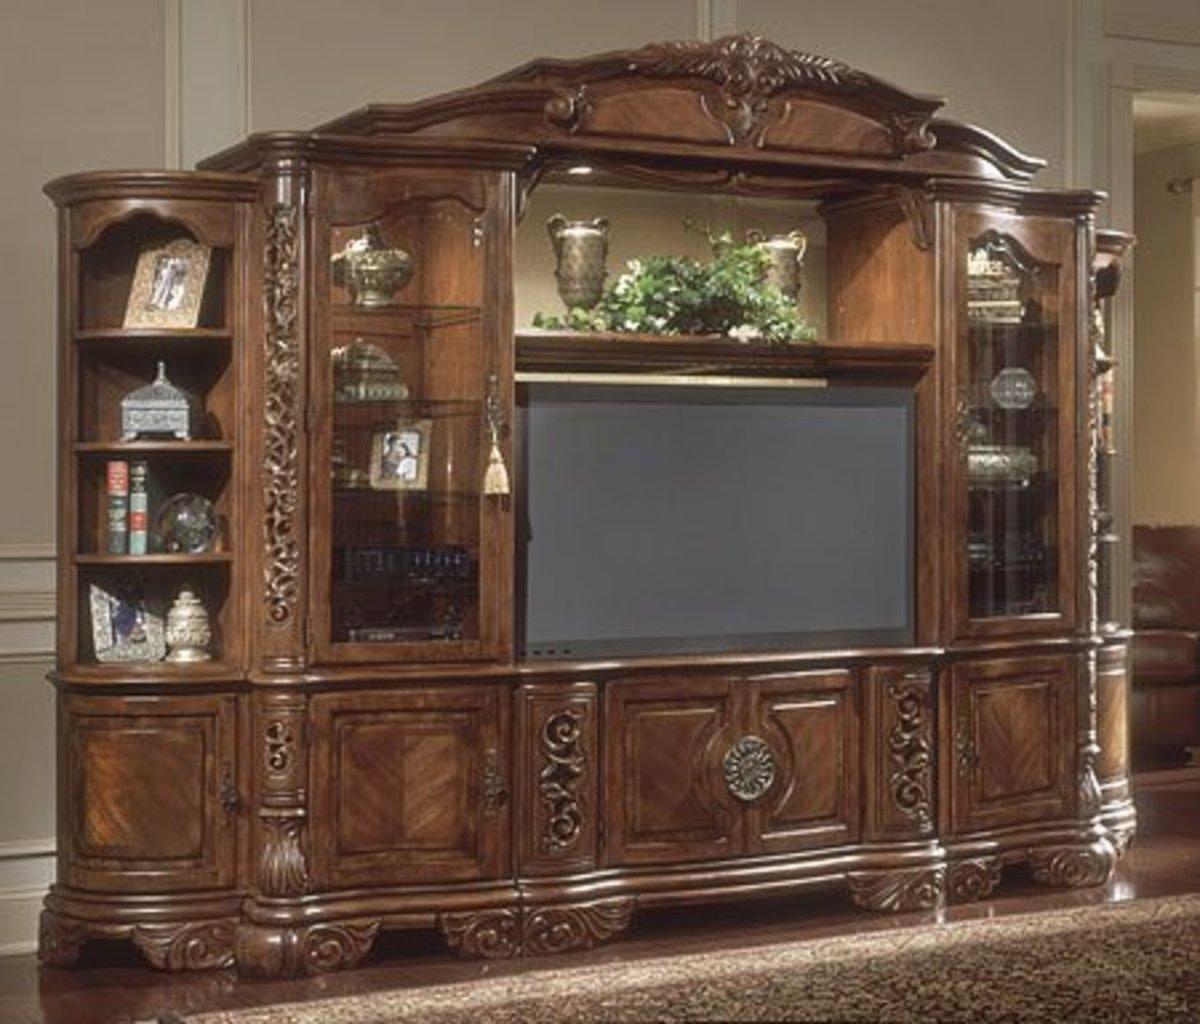 Excelsior TV Entertainment Wall Unit Rich Dark Fruitwood Finish $3,829.00